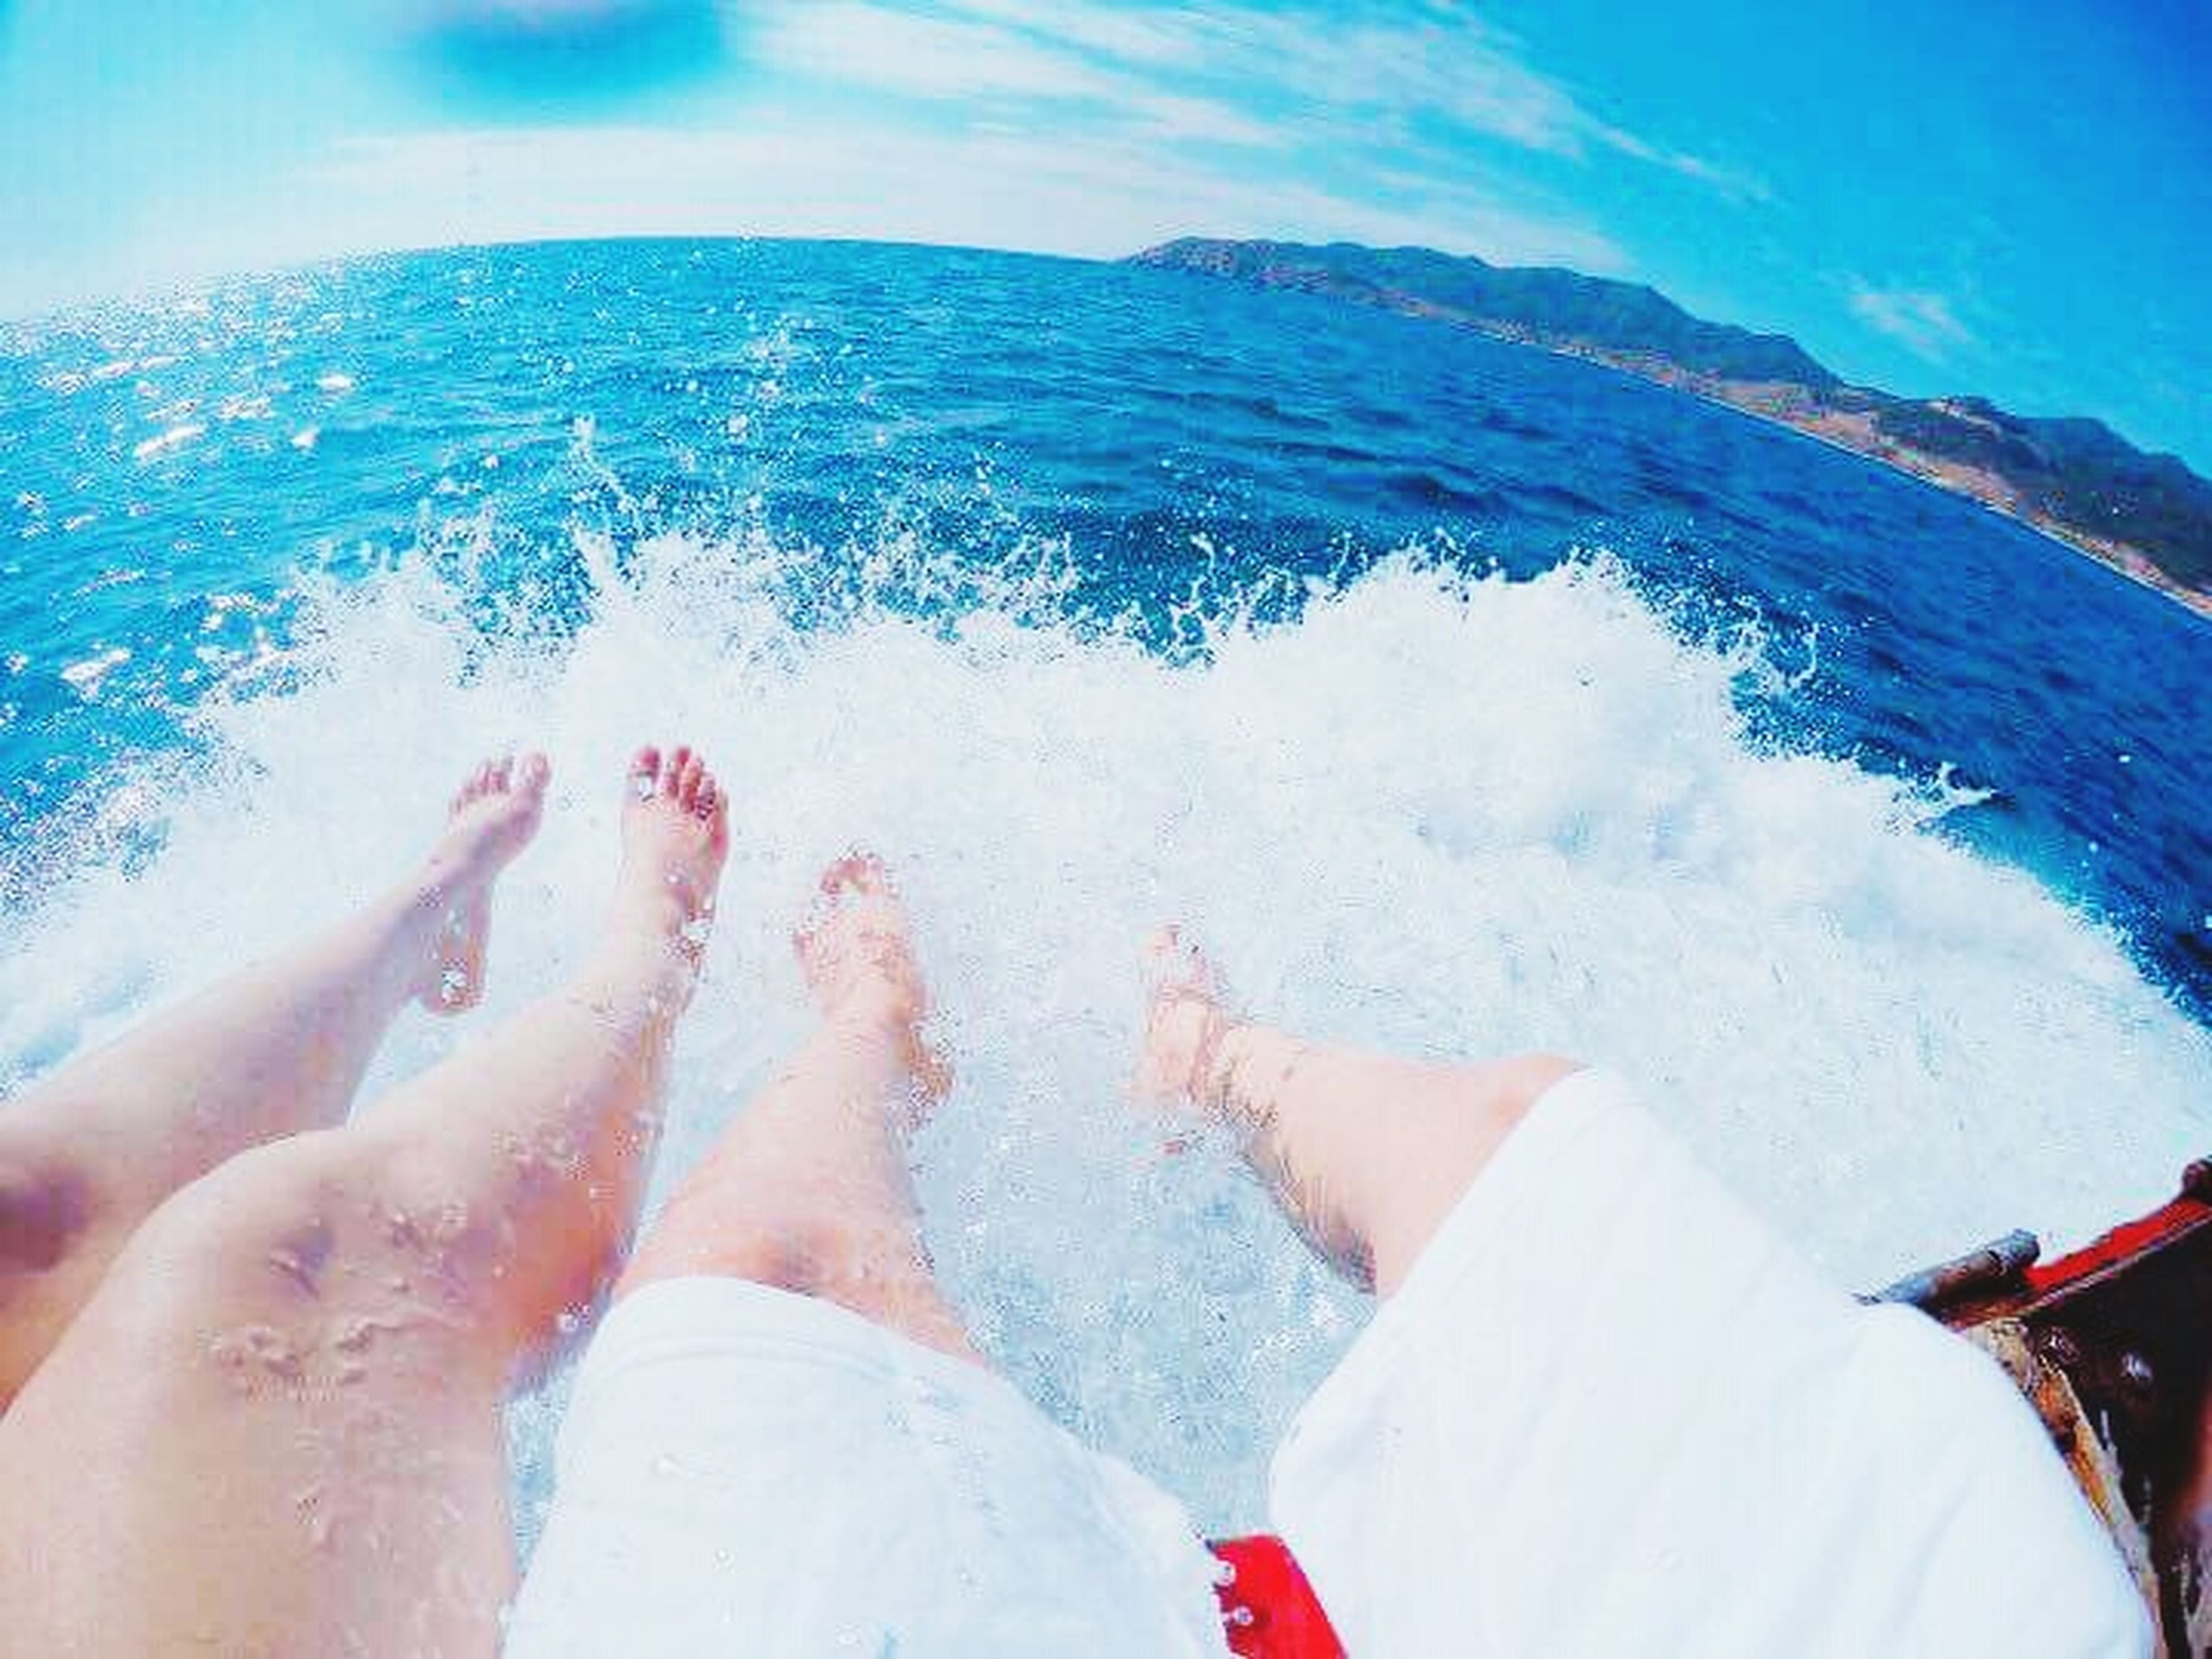 water, sea, motion, barefoot, human body part, leisure activity, vacations, blue, two people, fun, outdoors, togetherness, low section, wave, relaxation, day, swimming pool, beach, women, adult, men, horizon over water, close-up, people, nature, sky, adults only